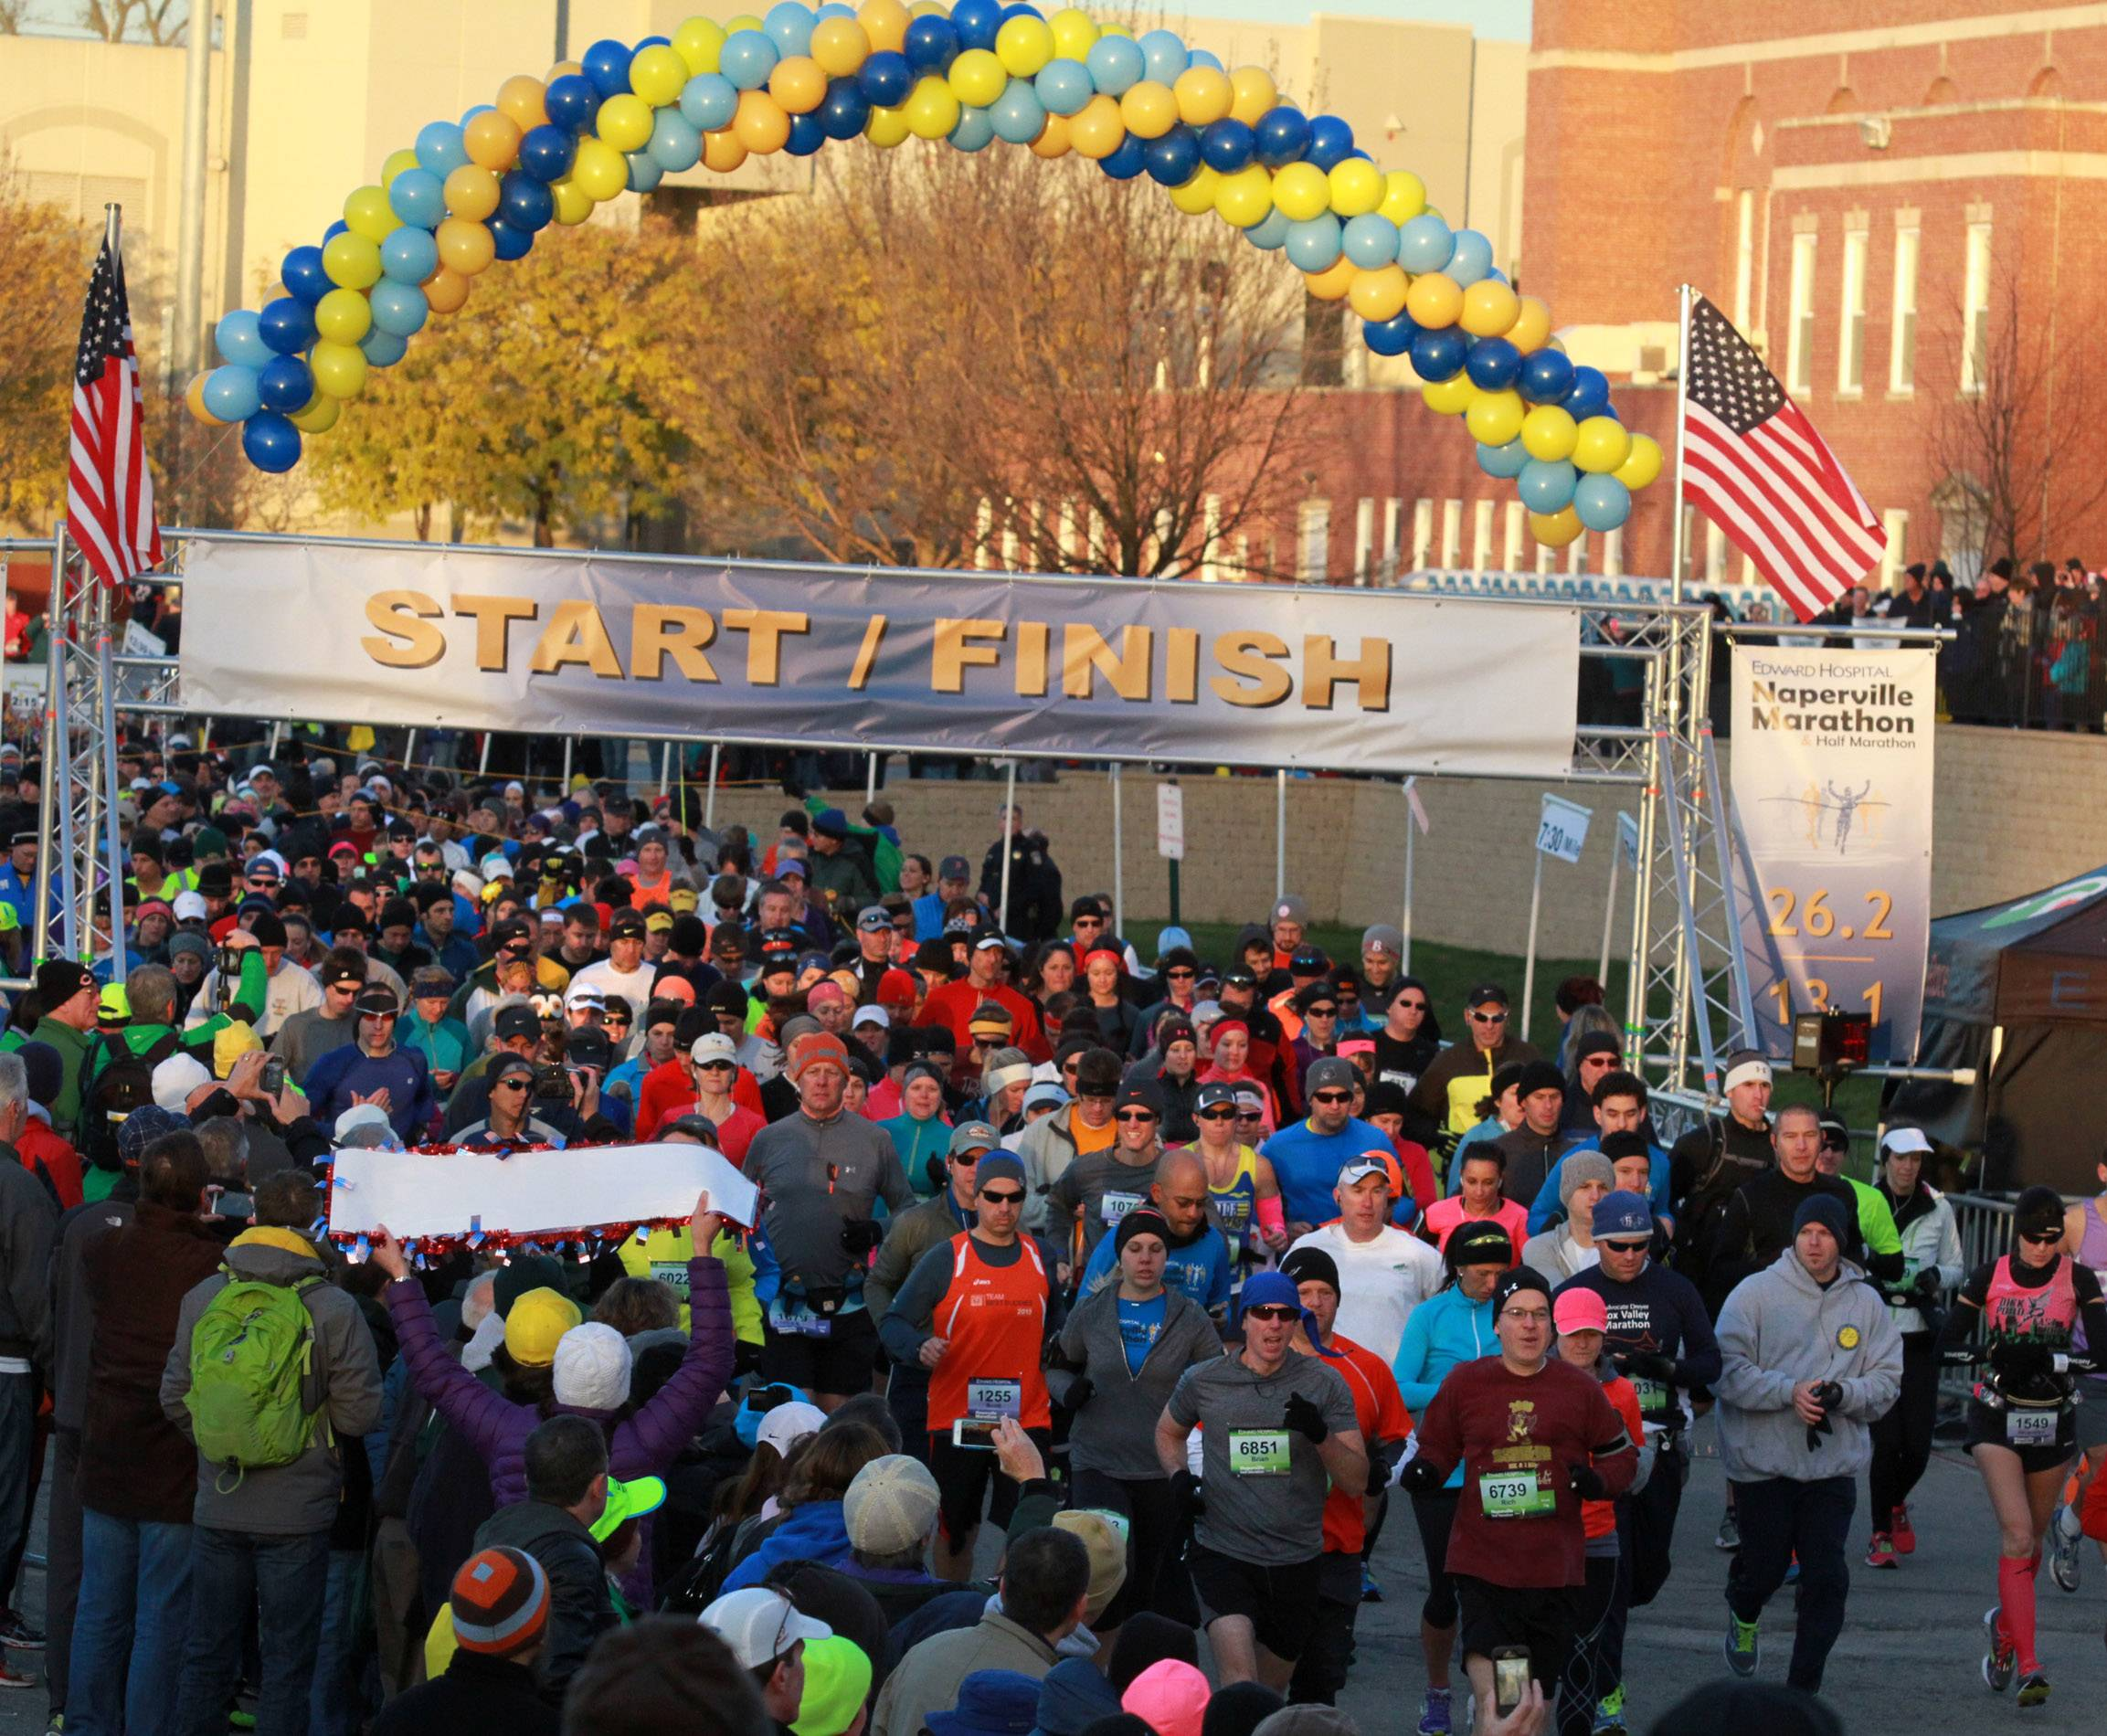 Organizers of the second annual Edward Hospital Naperville Marathon and Half Marathon will seek approval for a new route when they come before the Naperville City Council on Tuesday. Last year's inaugural race started on the campus of North Central College; this year's would start at Naperville Central High School.